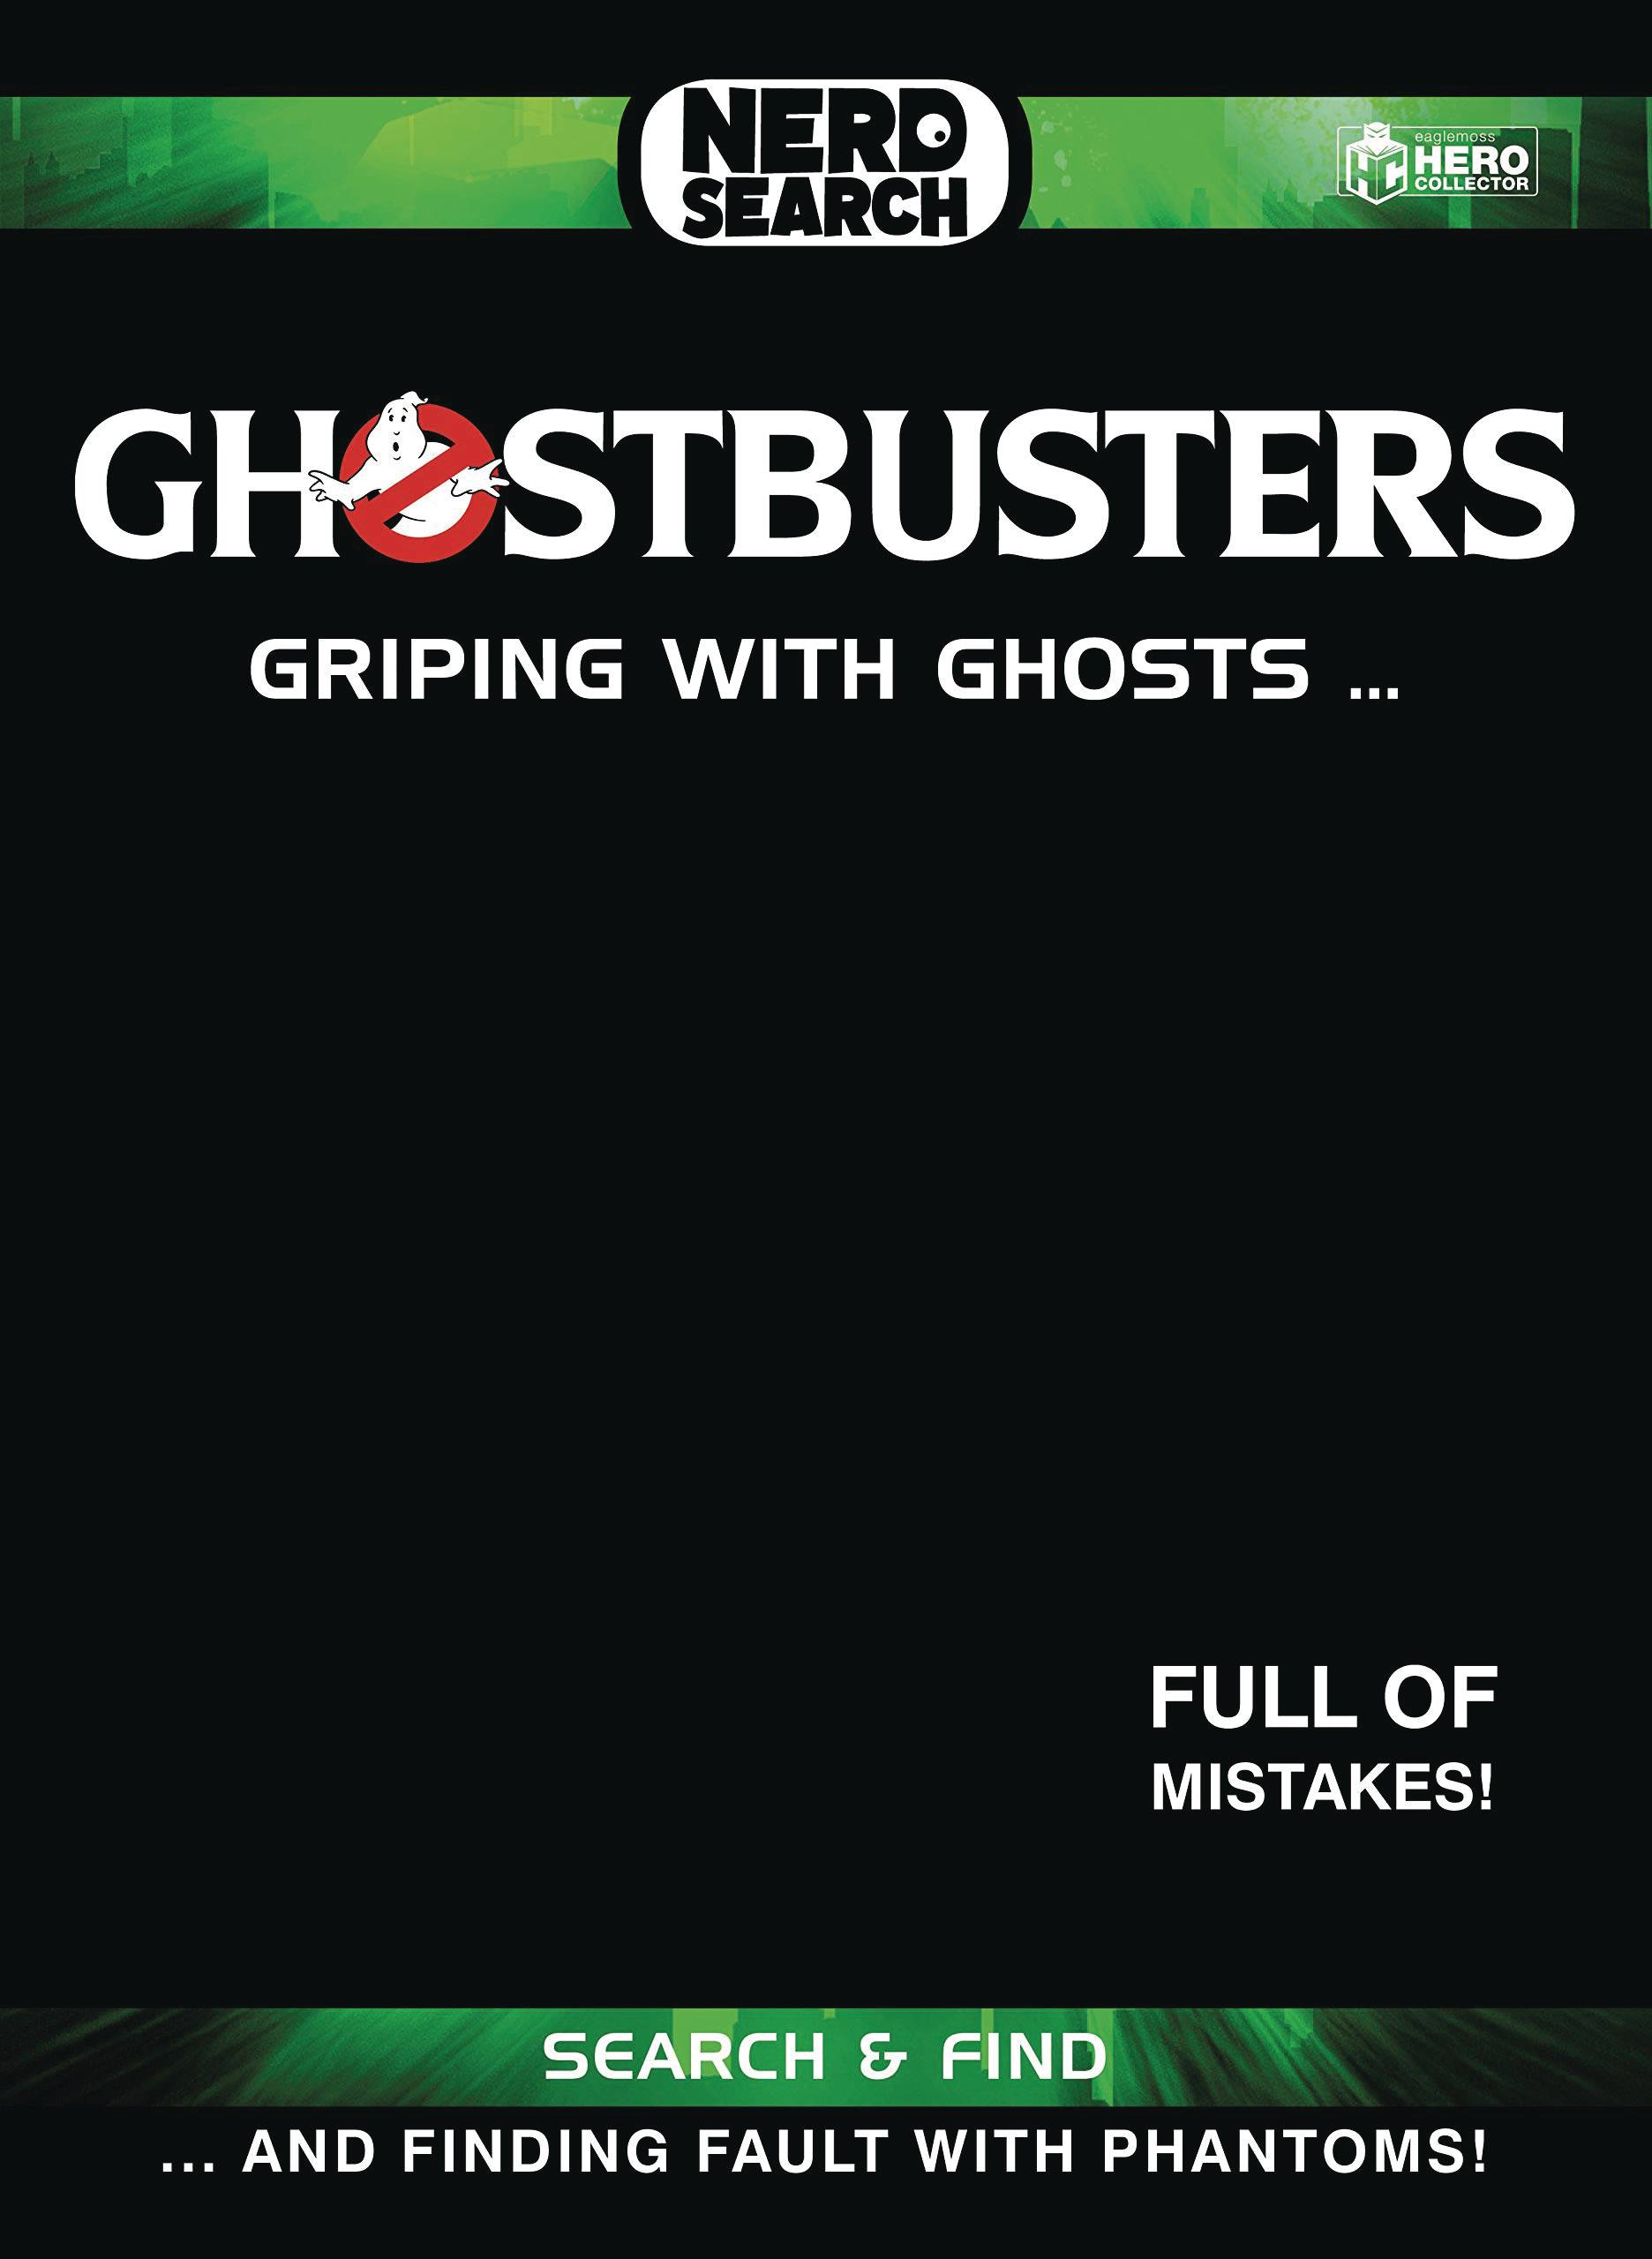 GHOSTBUSTERS NERD SEARCH HC GRIPING WITH GHOSTS